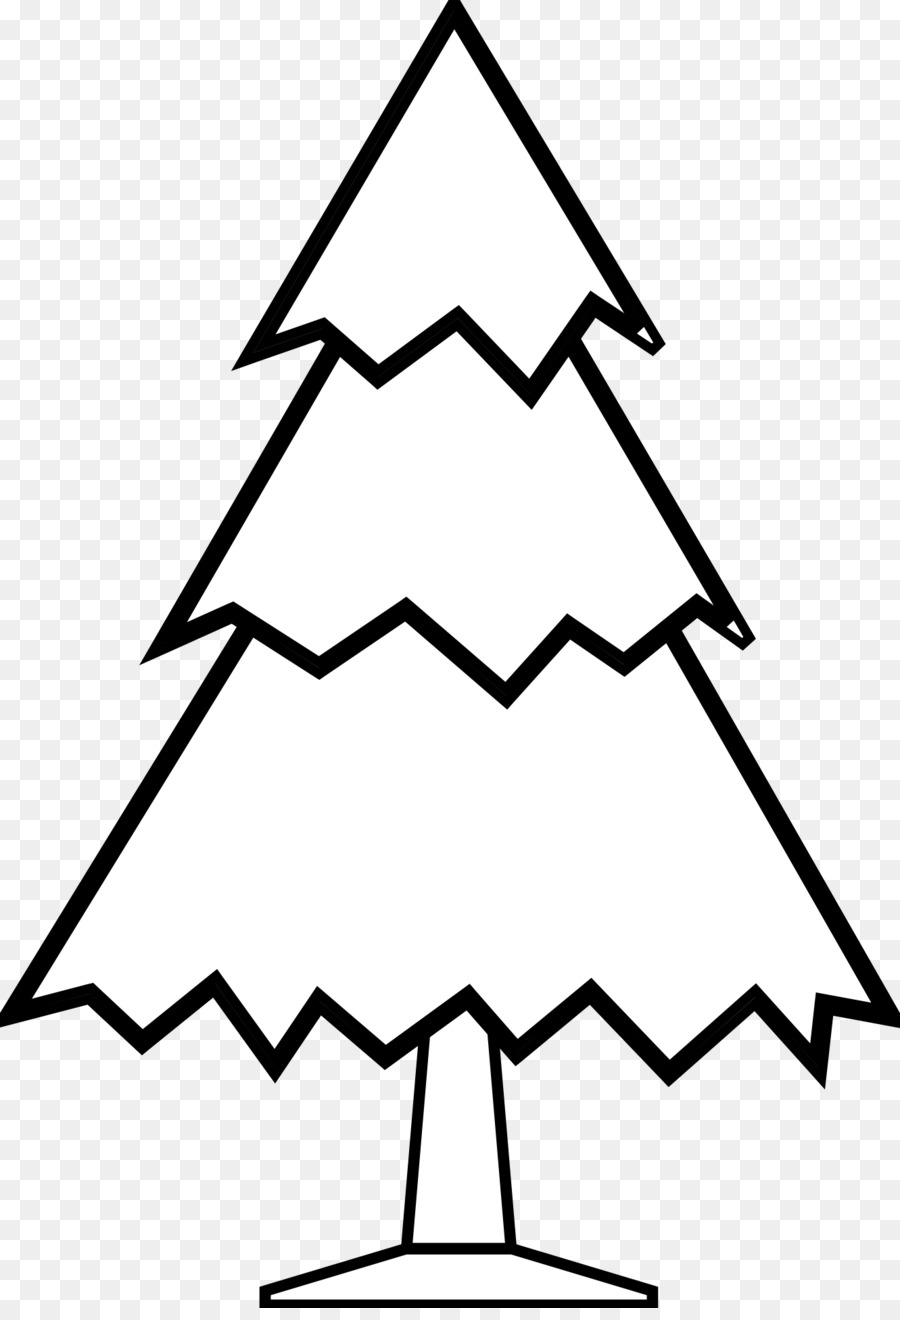 christmas tree black and white clip art black and white christmas rh kisspng com christmas tree decorations clipart black and white xmas tree black and white clipart